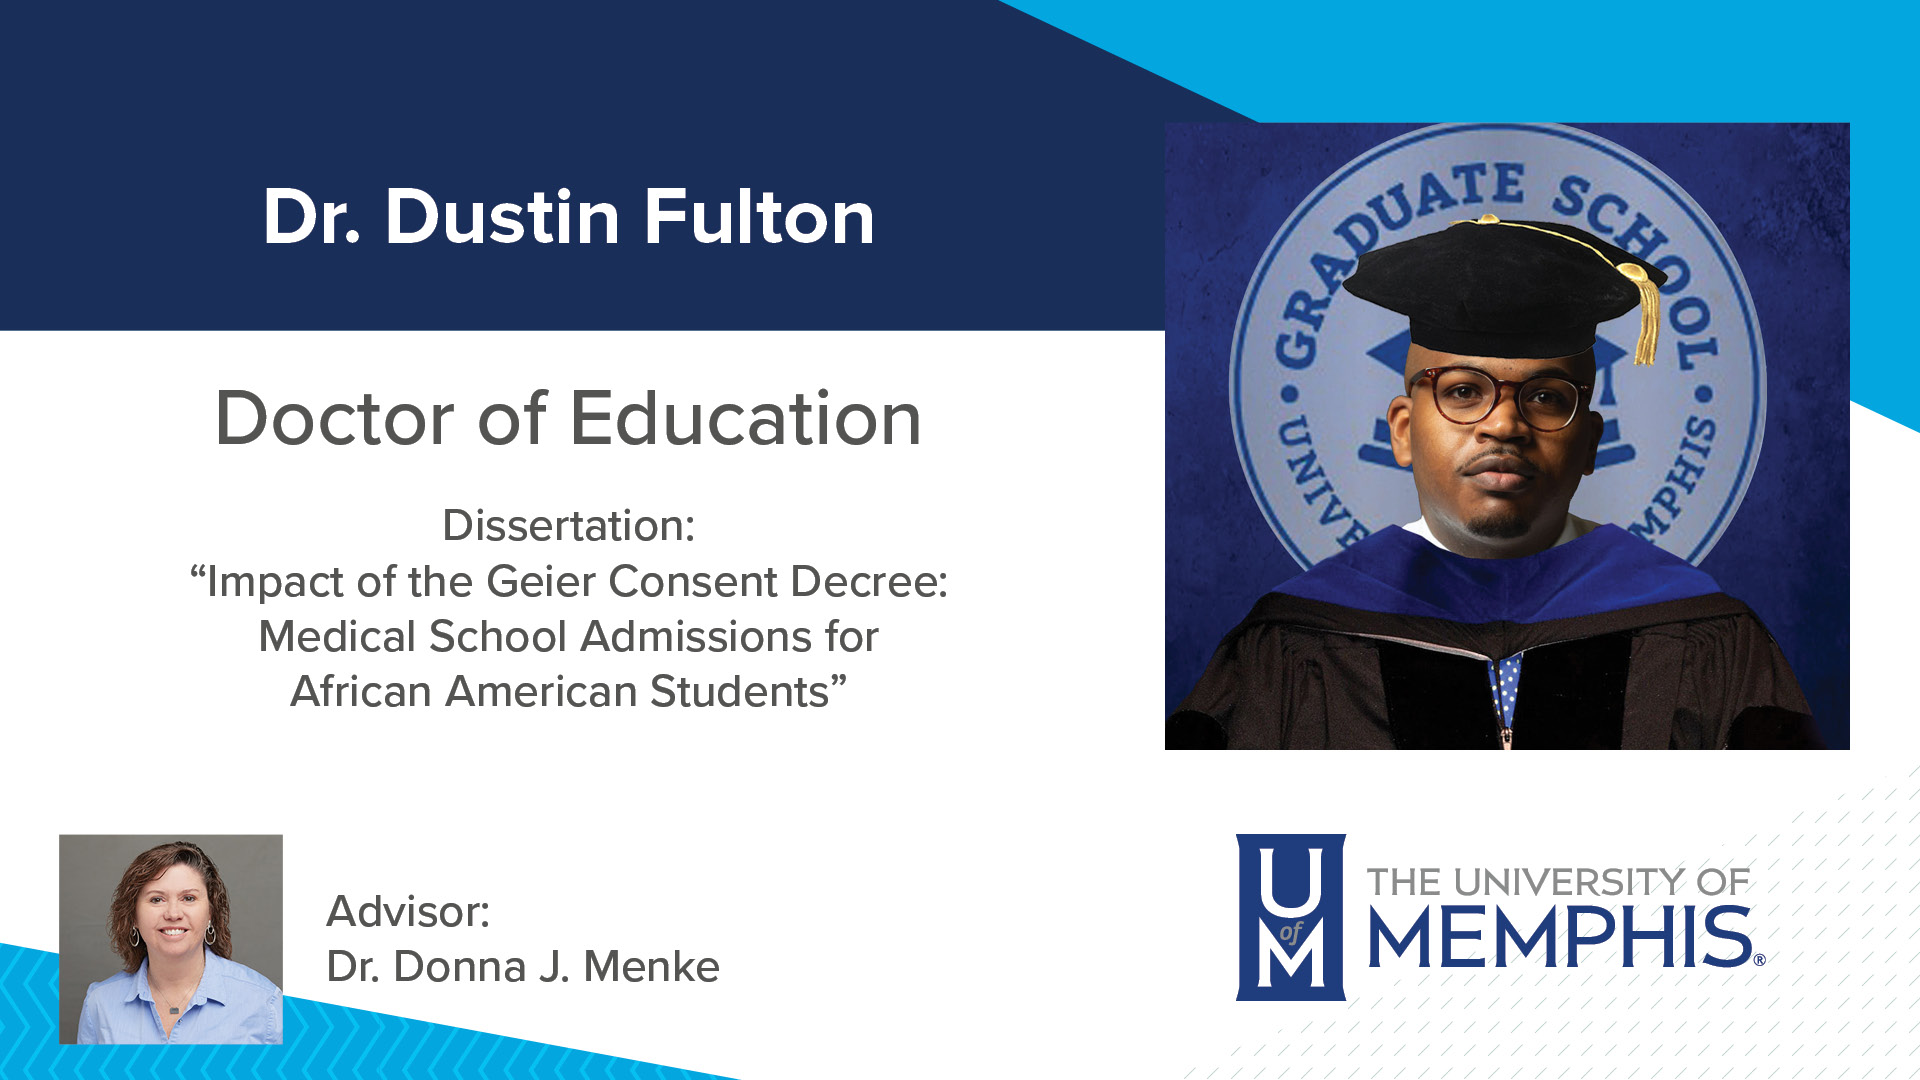 """Dr. Dustin Fulton Dissertation: """"Impact of the Geier Consent Decree: Medical School Admissions for African American Students"""" Major Professor: Dr. Donna J Menke"""